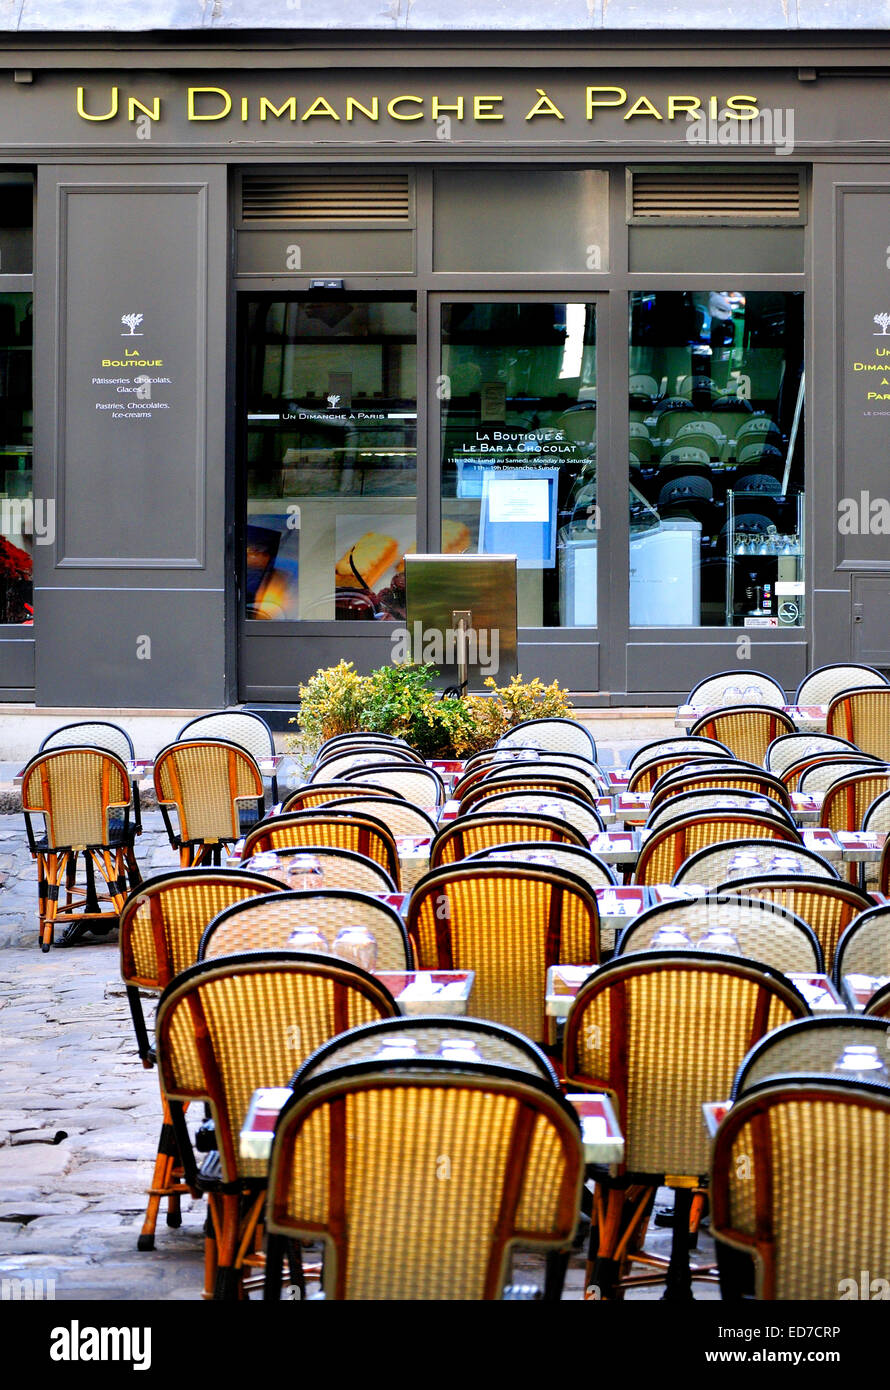 Paris, France. Cour du Commerce Sainte-Andre. 'Un Dimanche a Paris' cafe - Stock Image